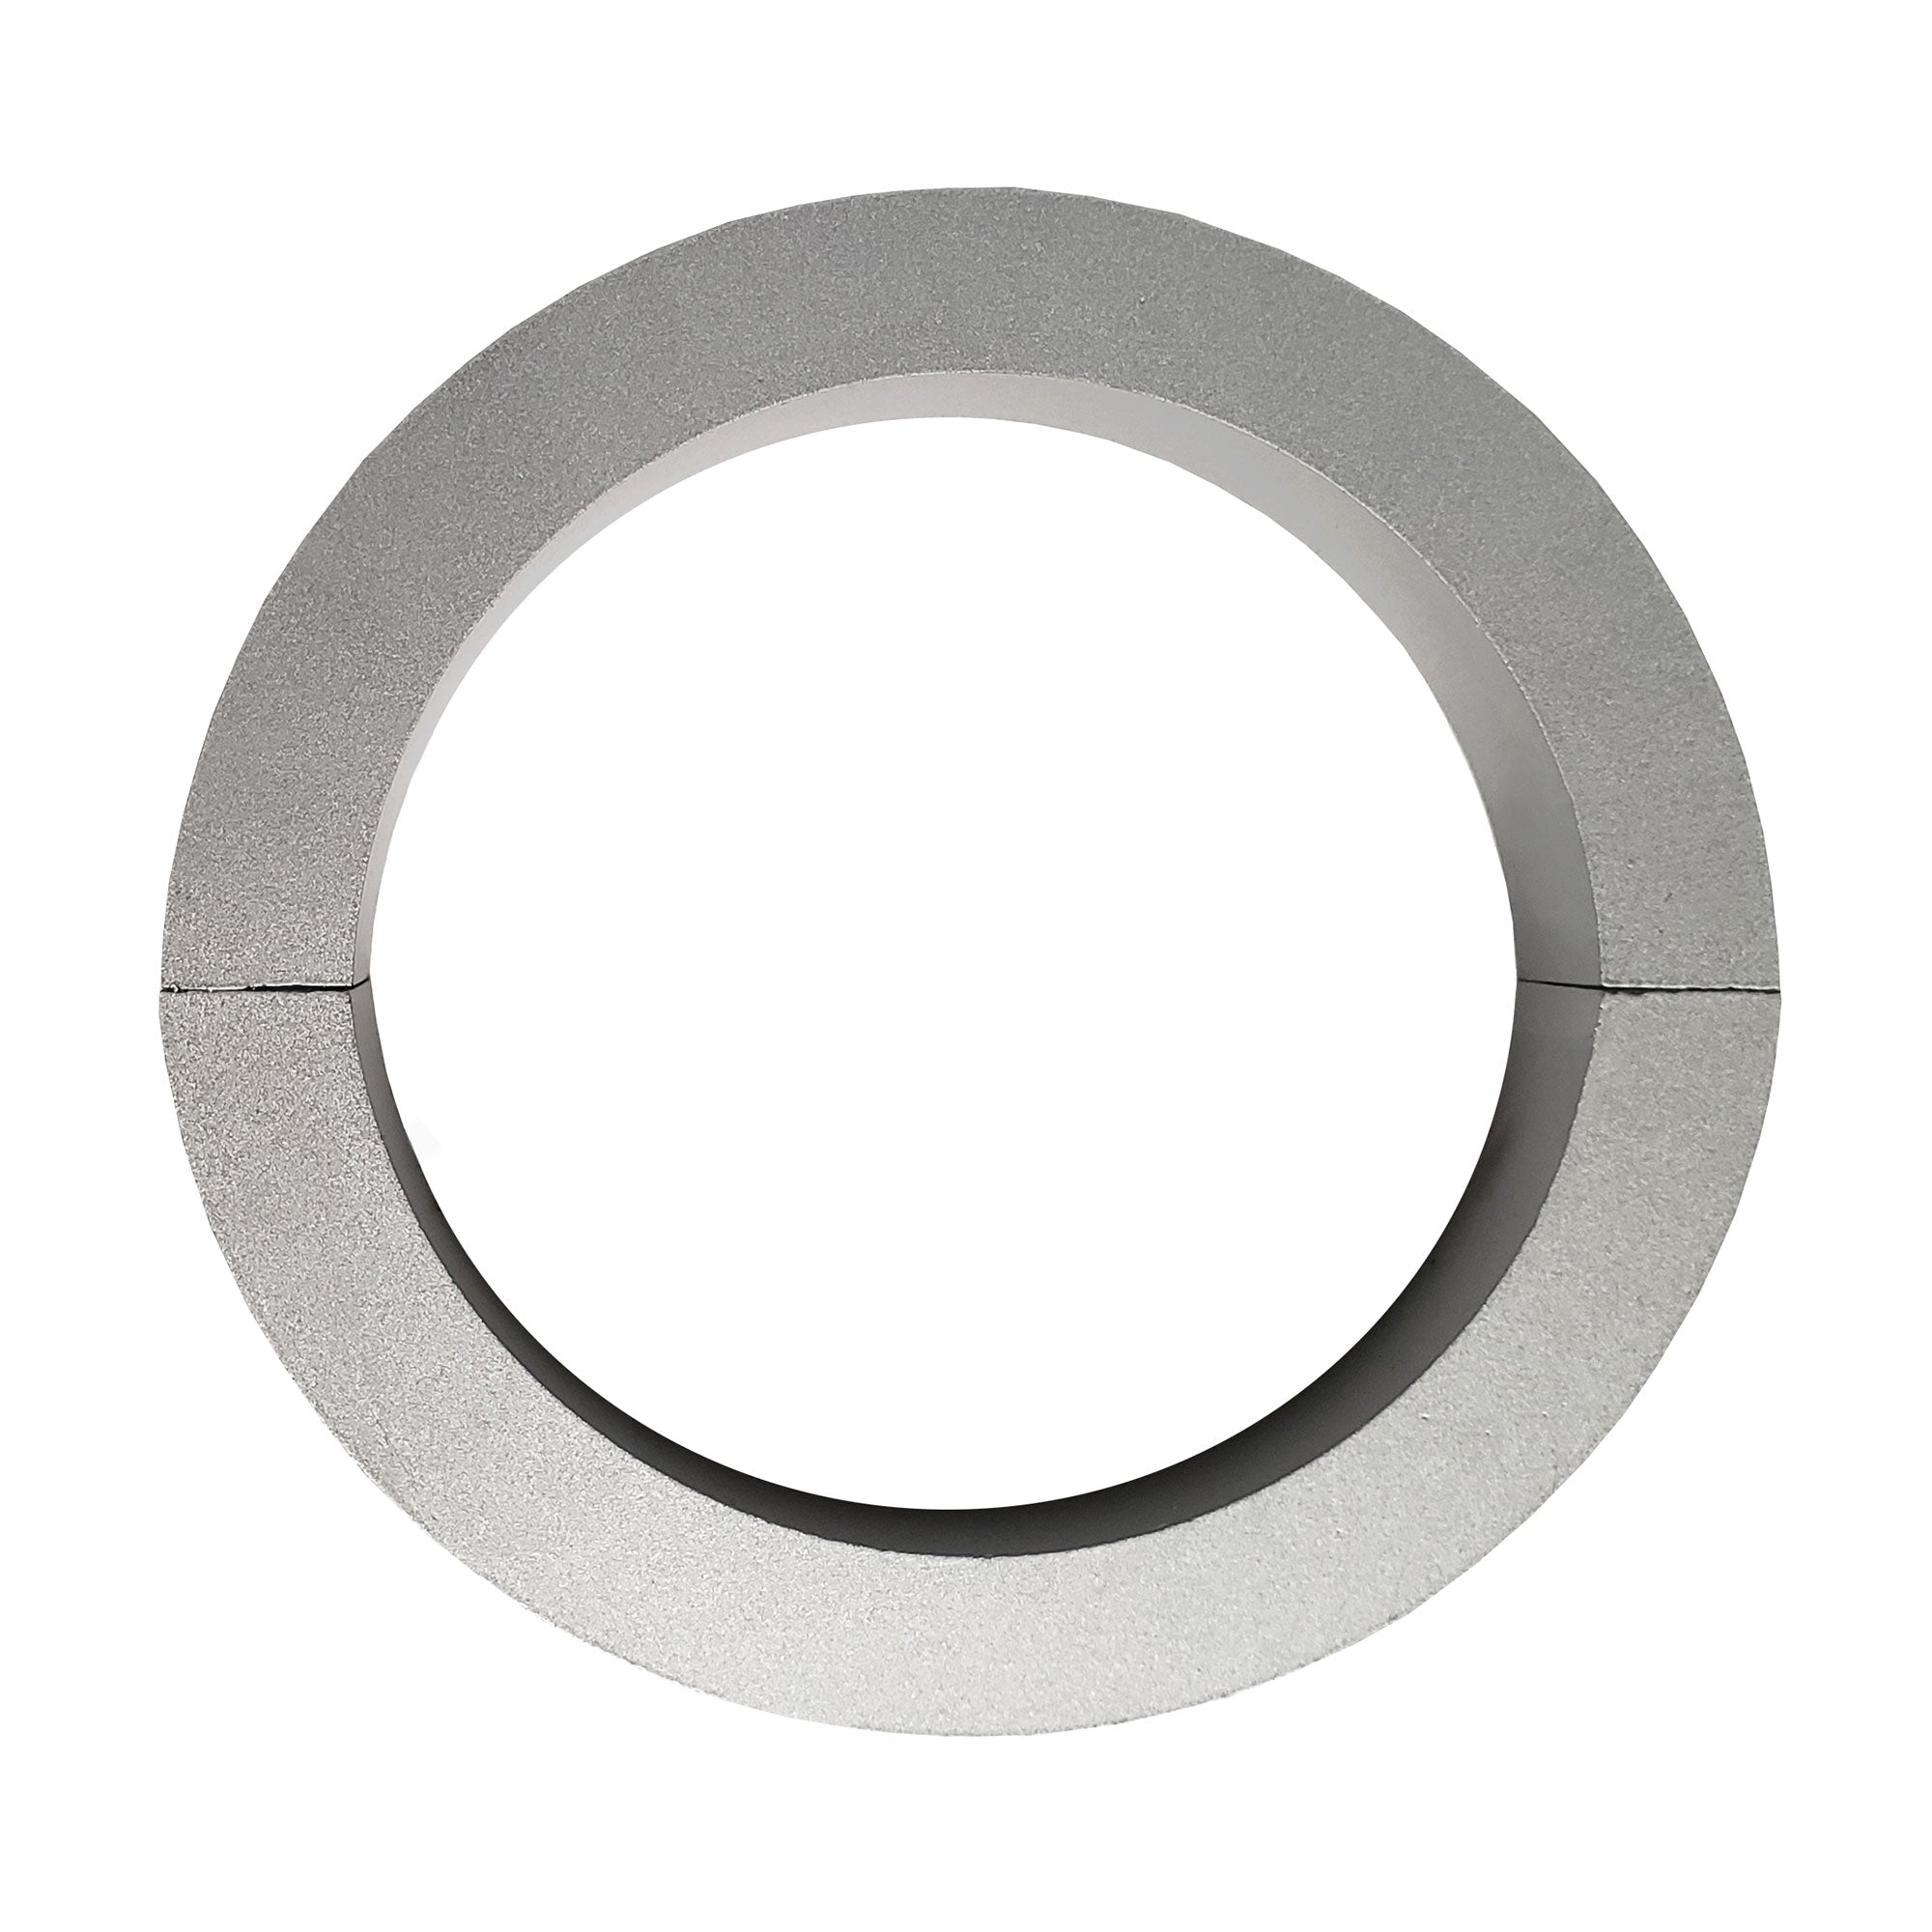 cyclonehaus Magnetic Guard Ring, Protects Against Lost Cutlery